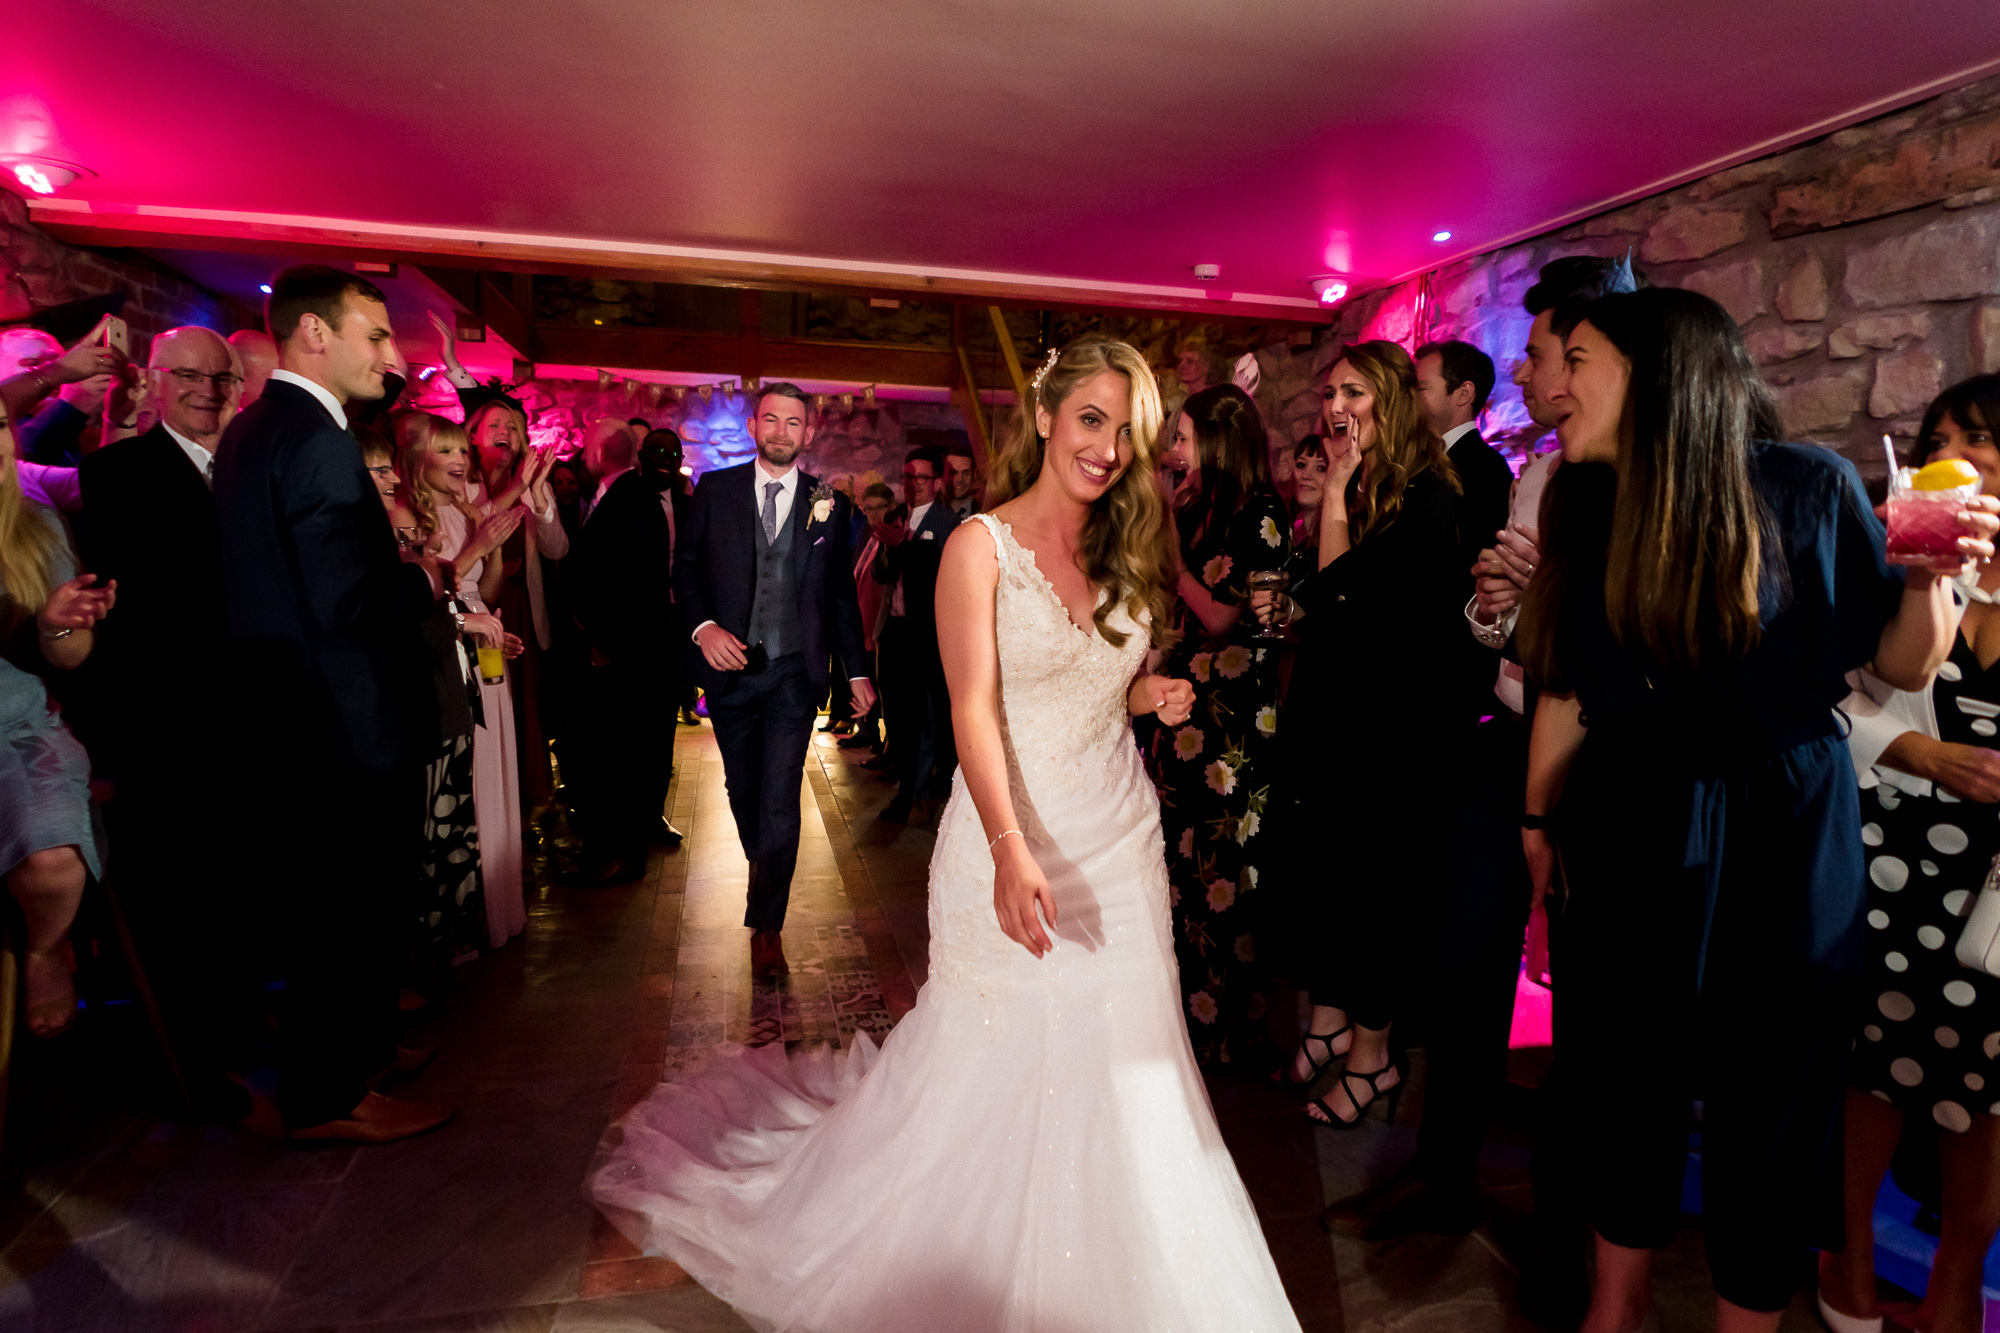 Tower Hill Barn Wedding Photographer based in north west england (5 of 7).jpg